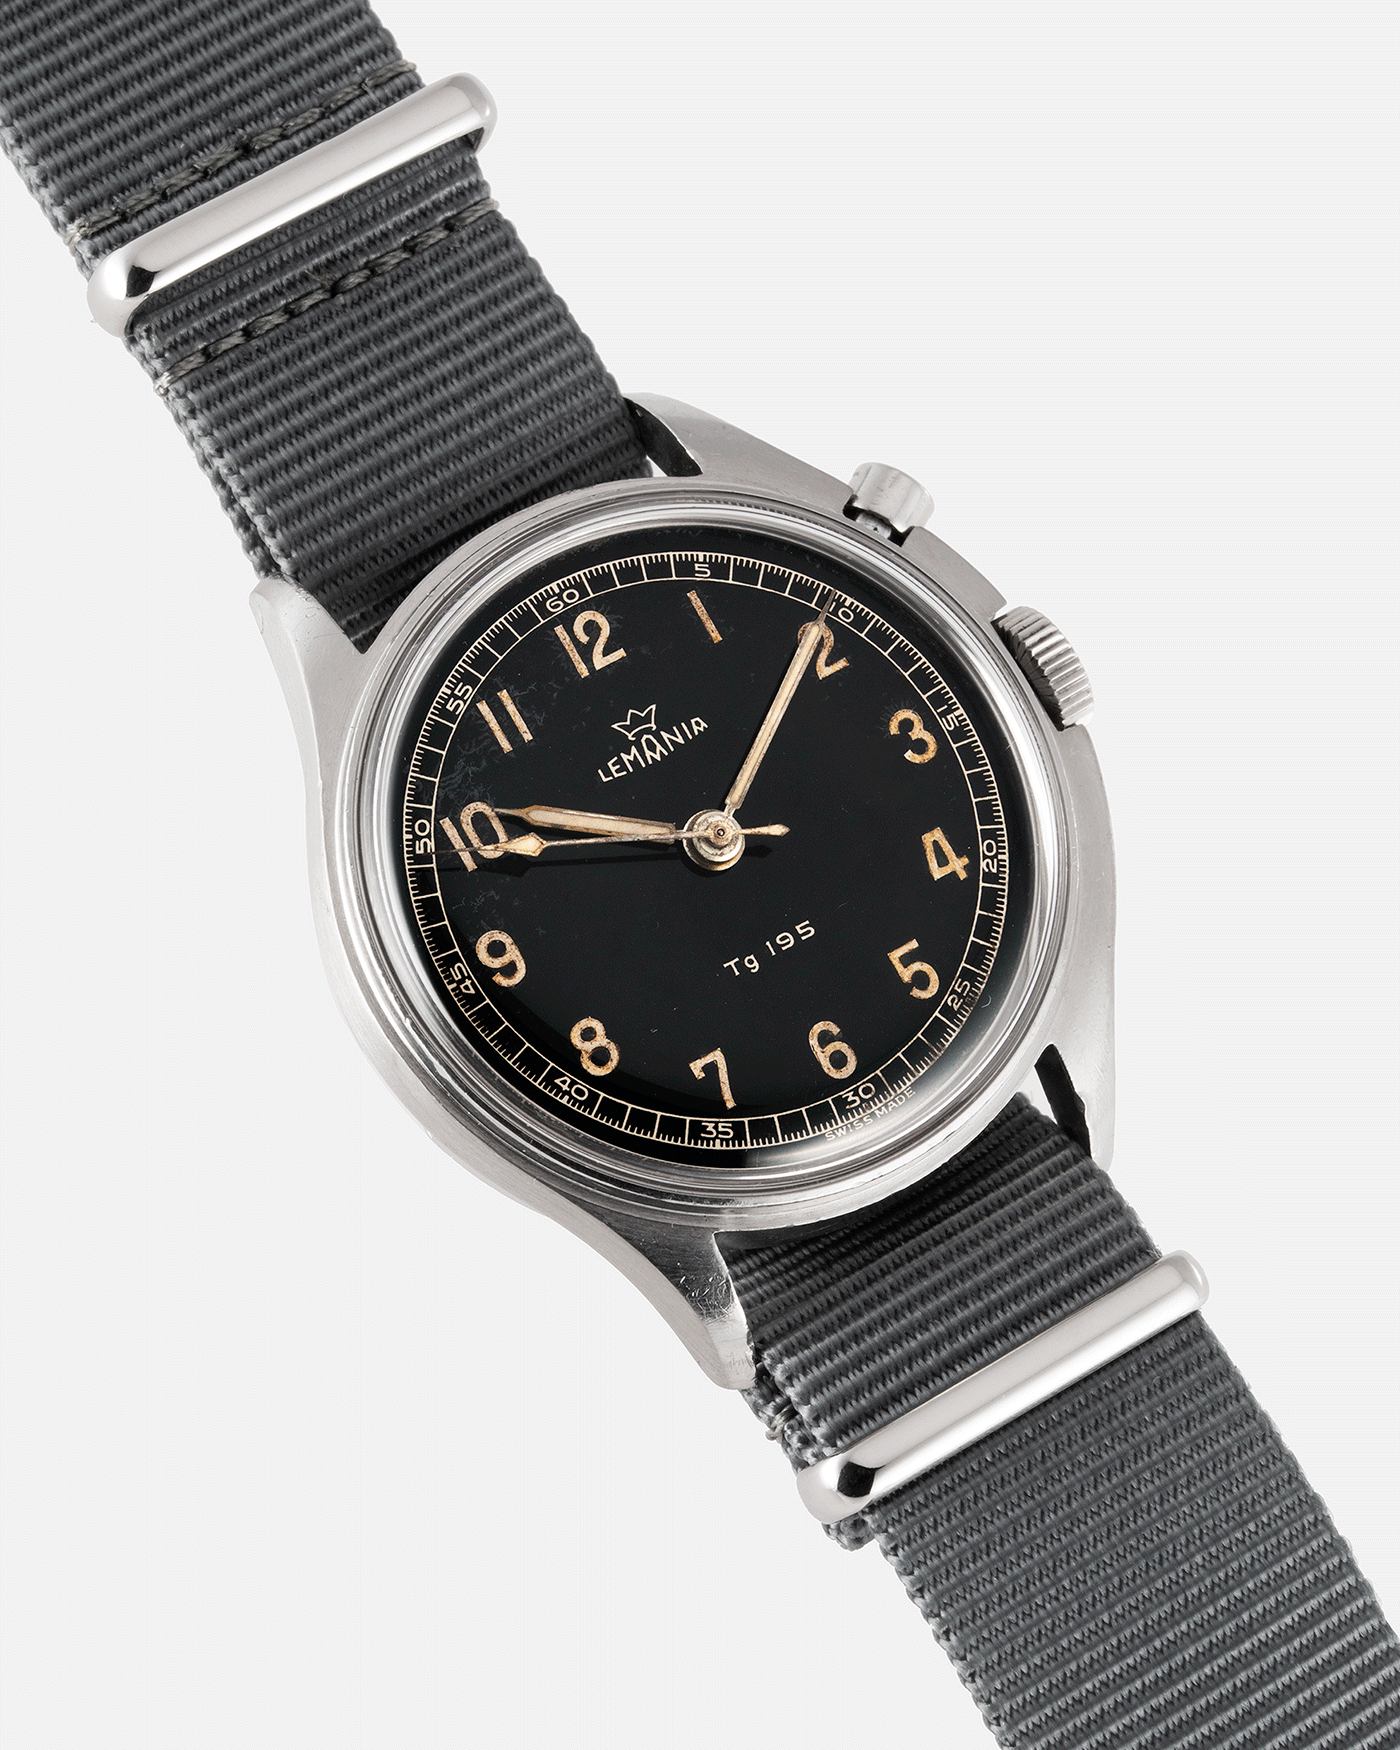 Brand: Lemania Year: 1957 Model: TG 195 Material: Stainless Steel Movement: Cal. 2225 Case Diameter: 40mm Lug Width: 20mm Bracelet/Strap: Grey NATO Strap